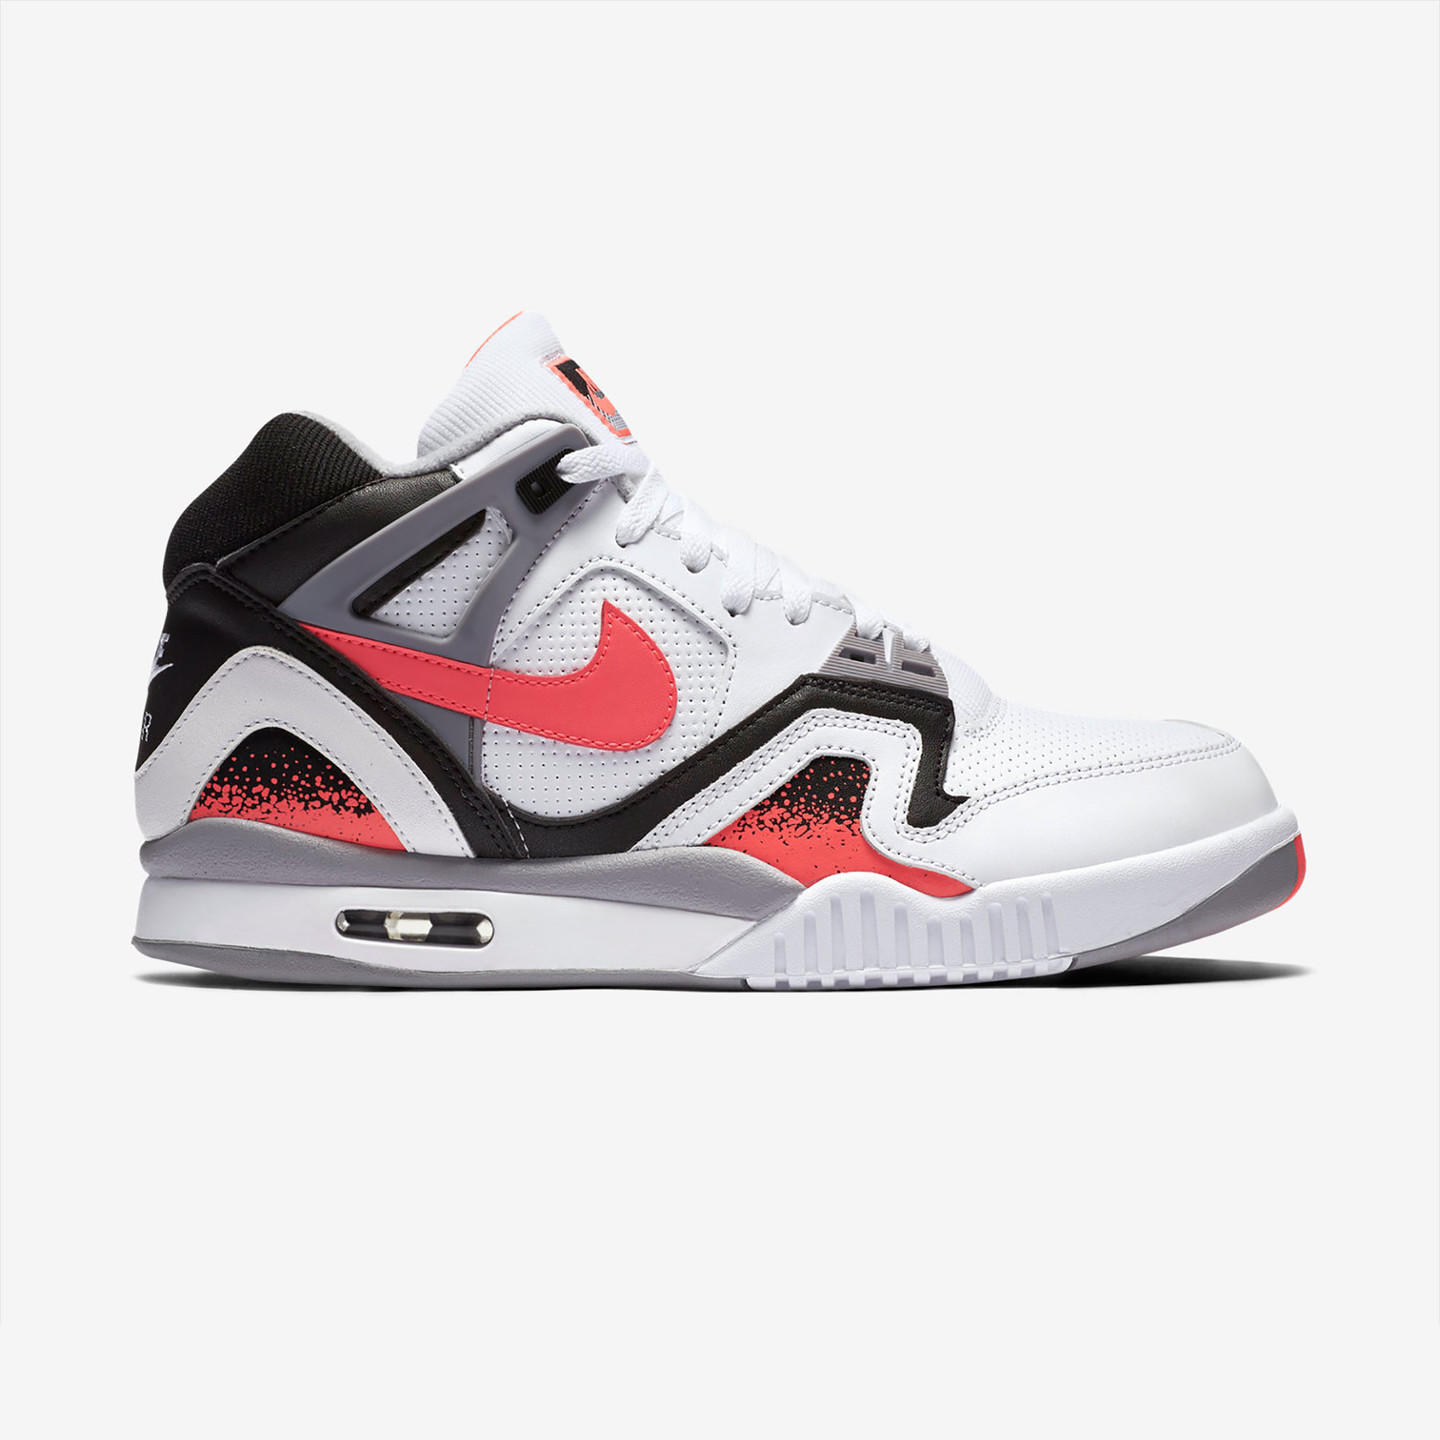 Nike Air Tech Challenge II White / Hot Lava 318408-104